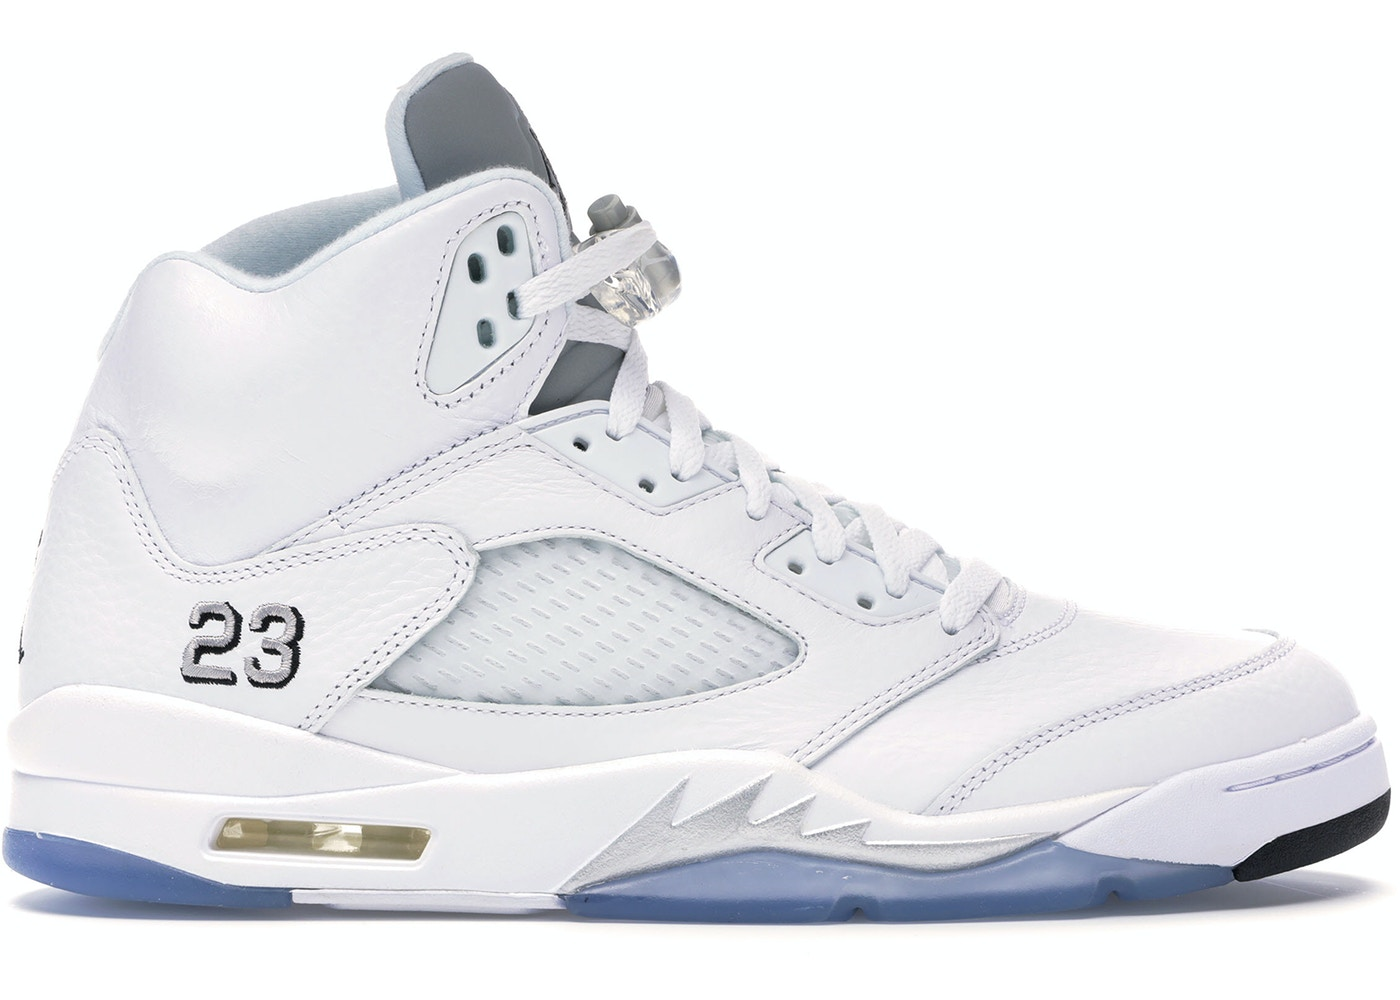 finest selection ca748 0e12f Buy Air Jordan 5 Shoes & Deadstock Sneakers